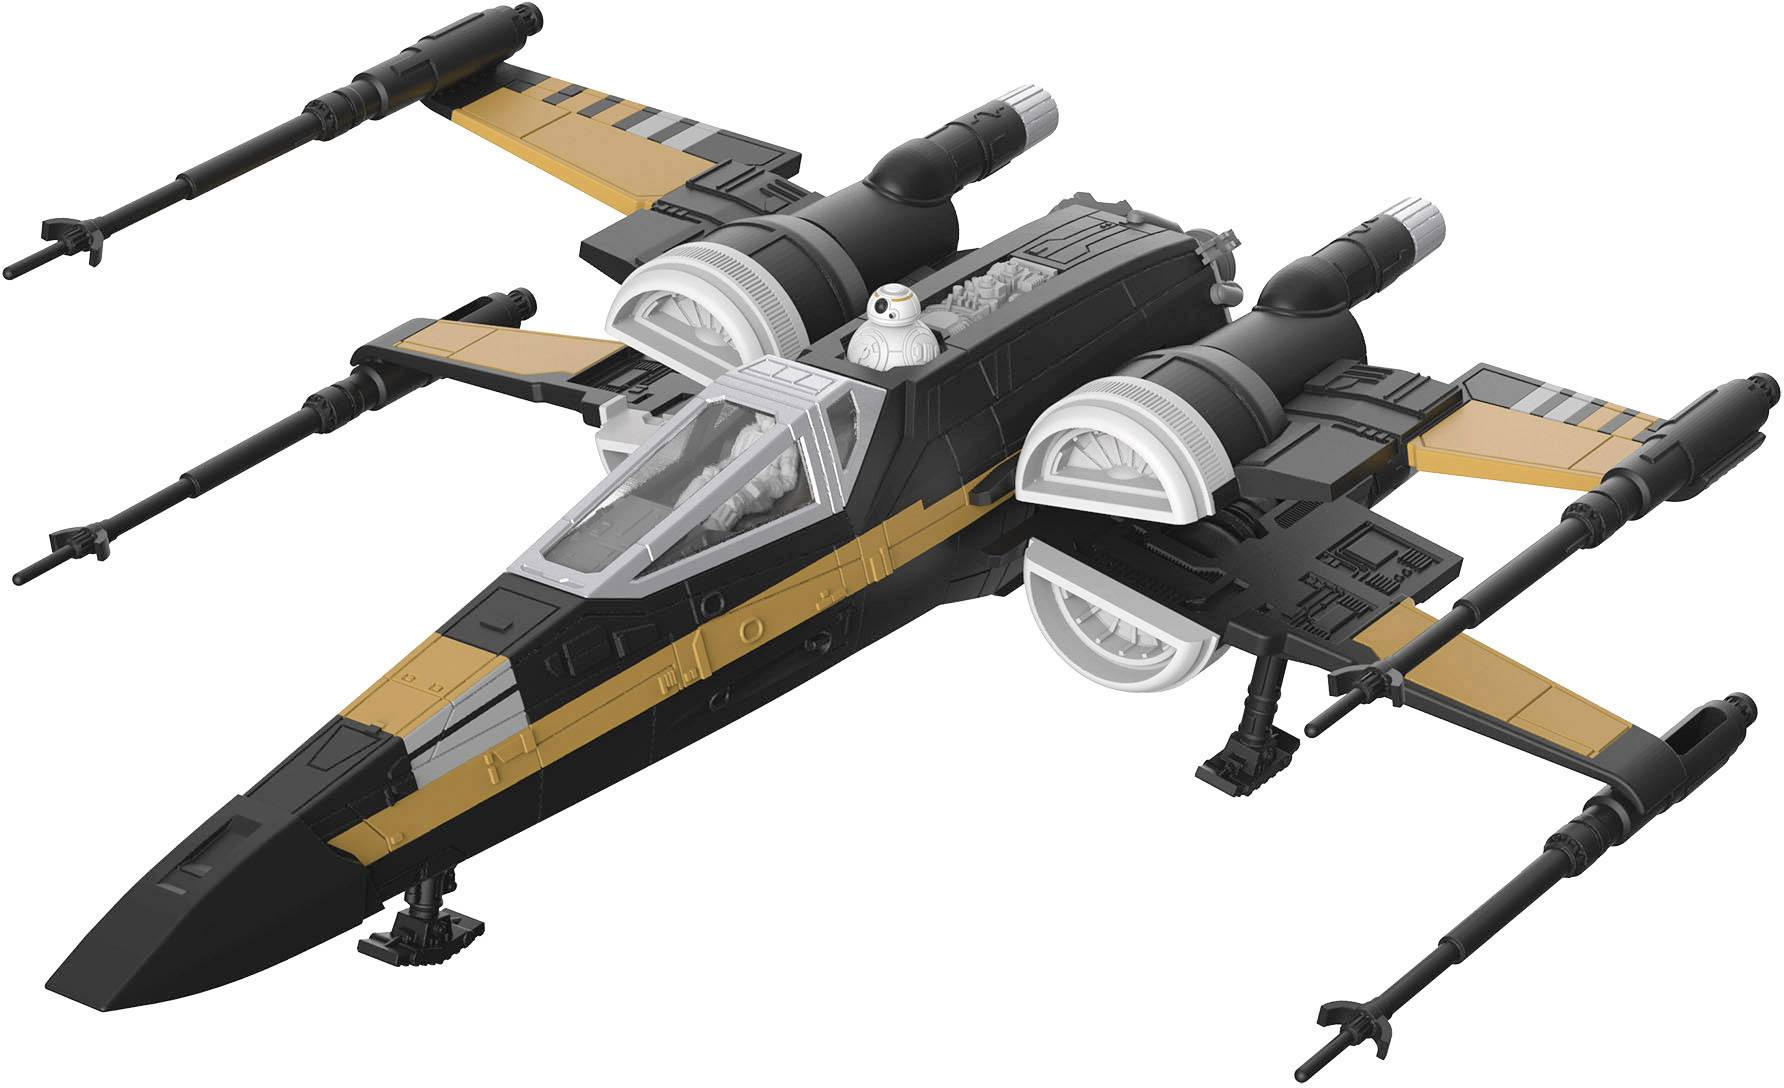 Revell 06763 Build & Play Poe's Boosted X-Wing Fighter Sci